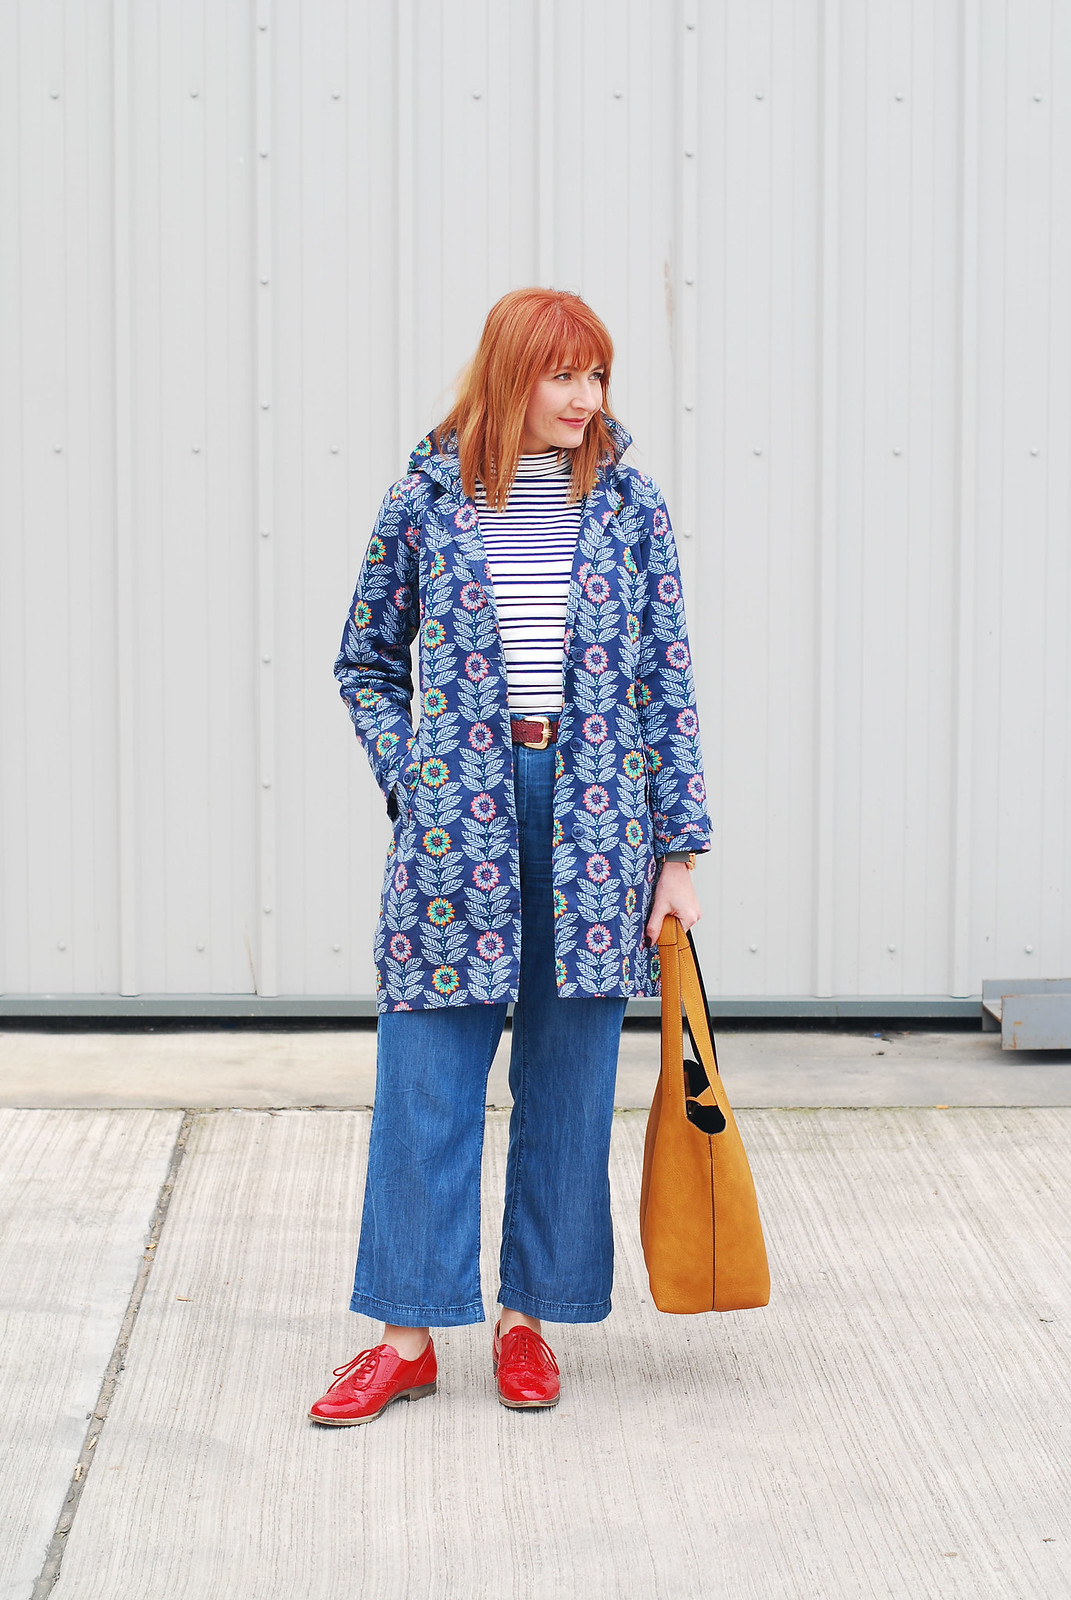 Bright spring weather outfit: Floral Seasalt raincoat  high neck stripe Breton top  wide leg cotton denim trousers  red brogues  ochre bucket bag | Not Dressed As Lamb, over 40 style